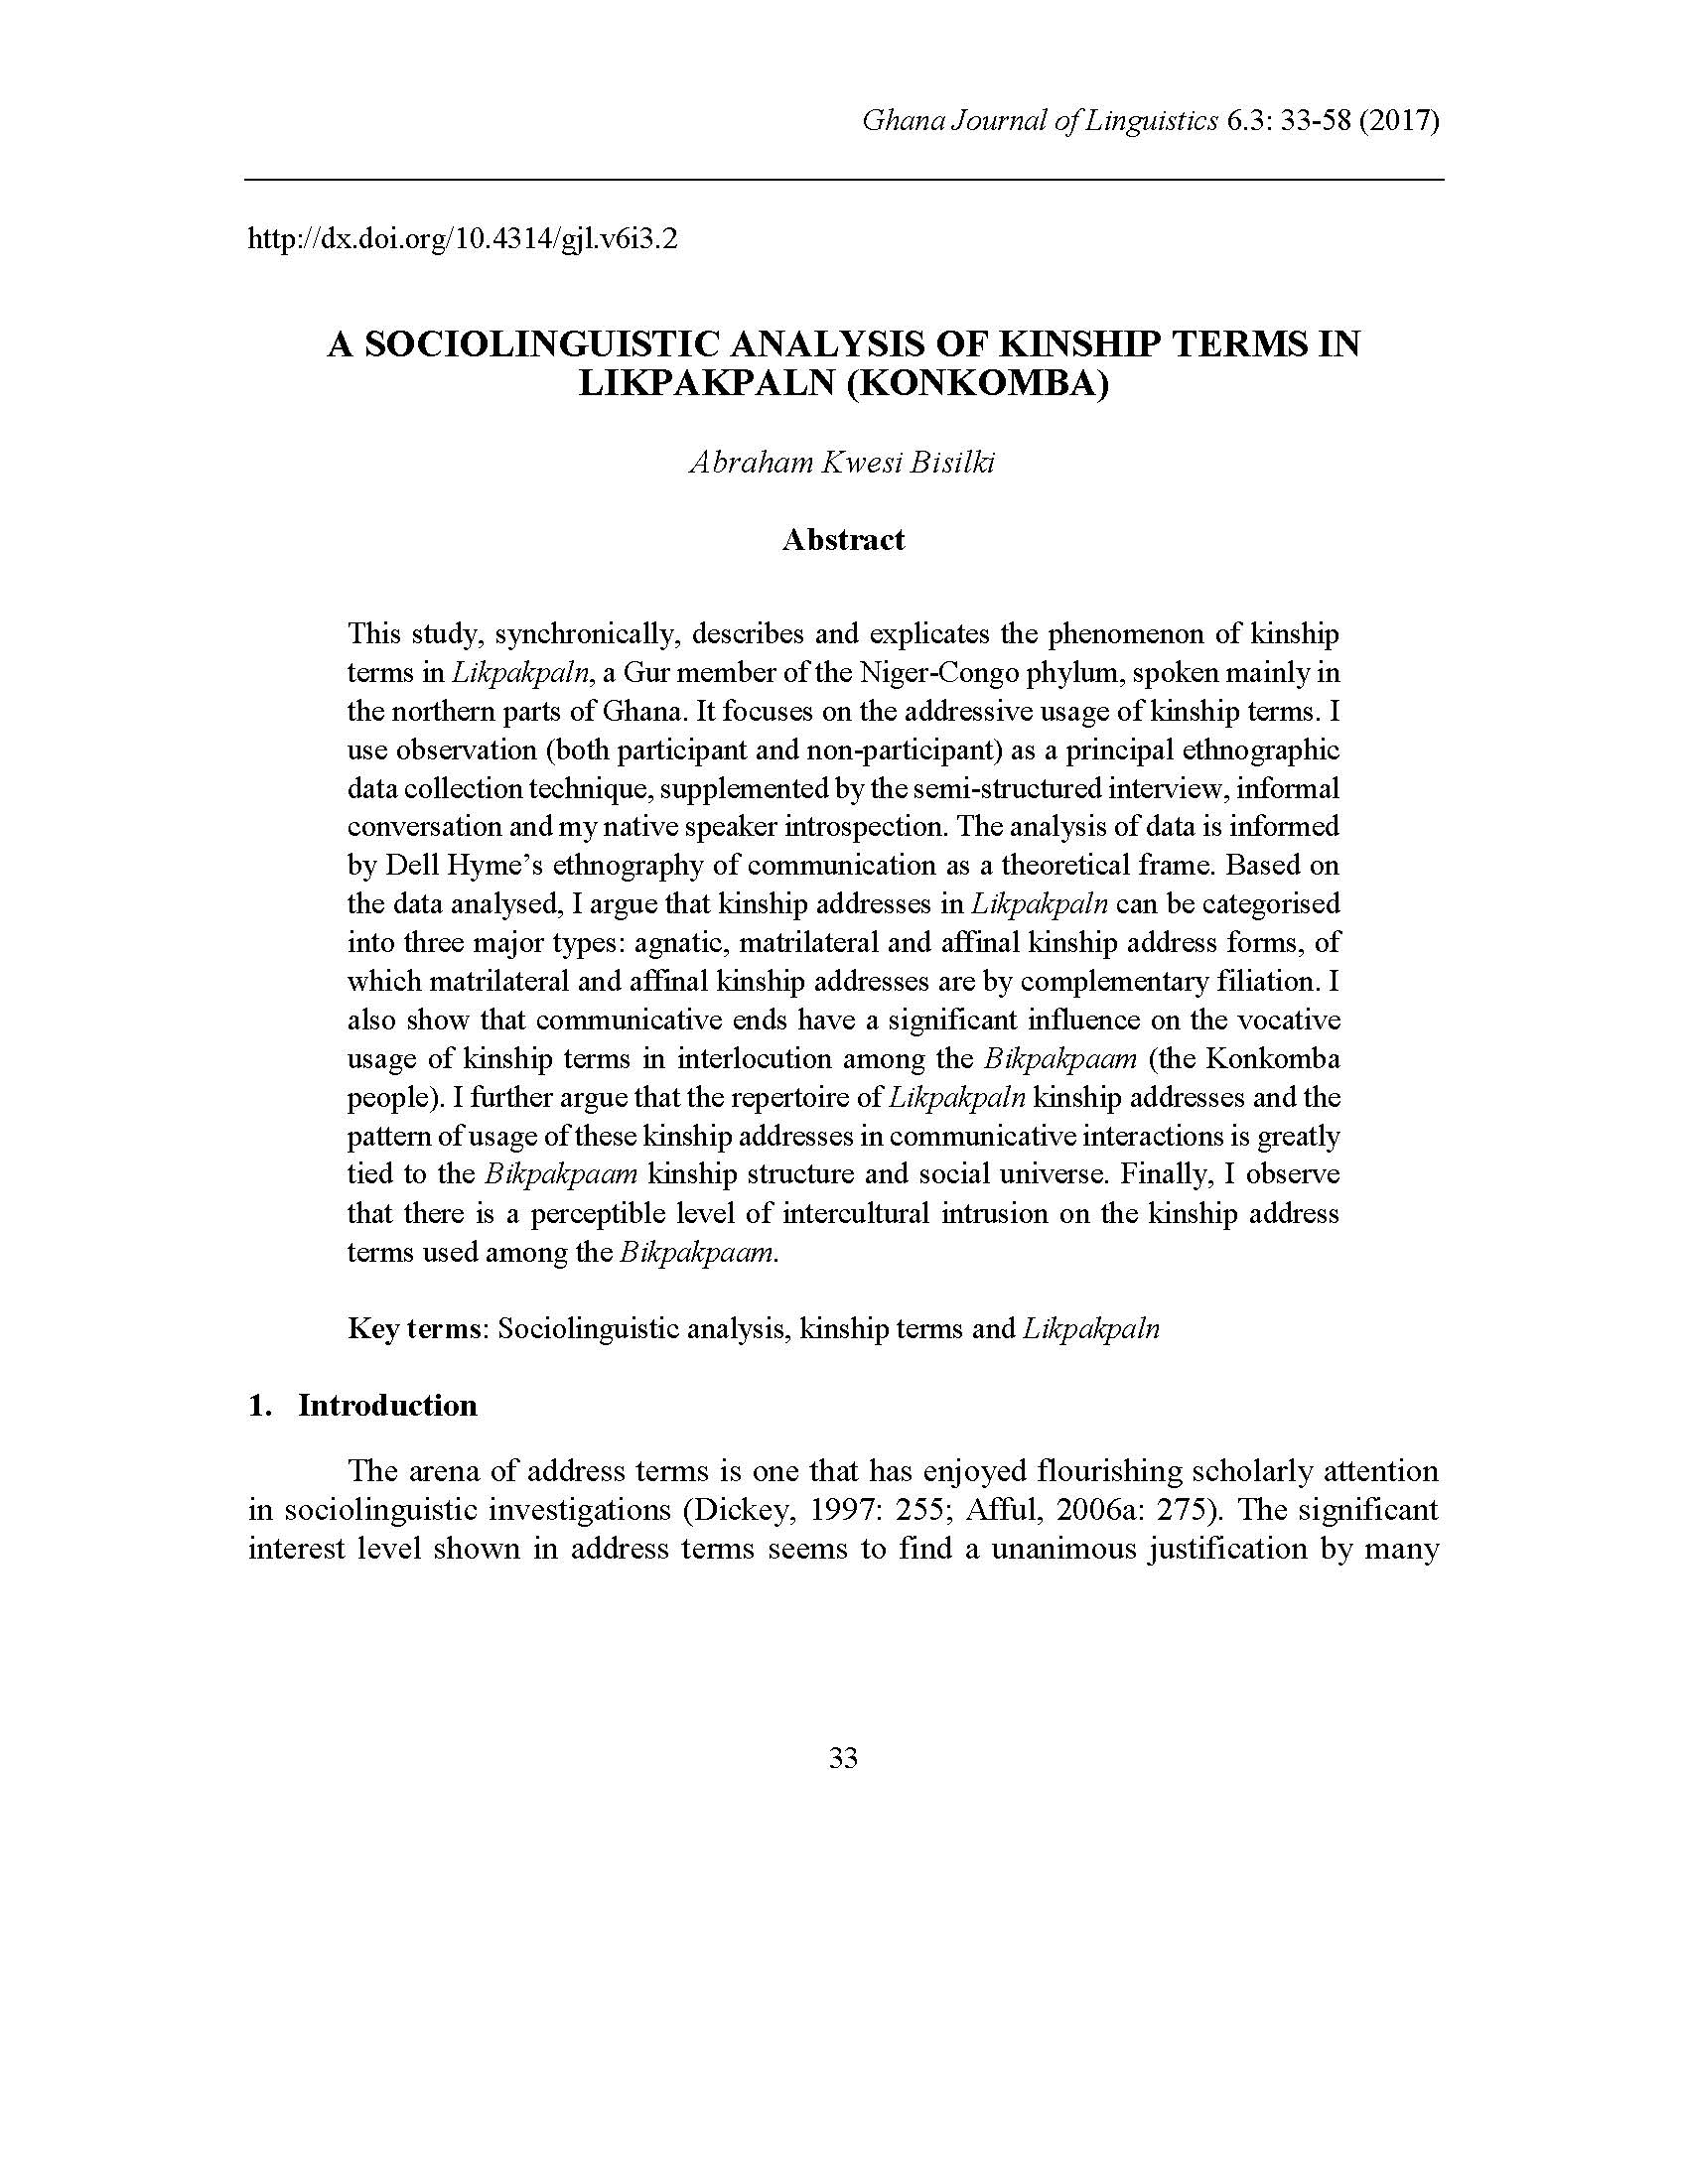 Bisilki: A Sociolinguistic Analysis of Kinship Terms in Likpakpaln (Konkomba)